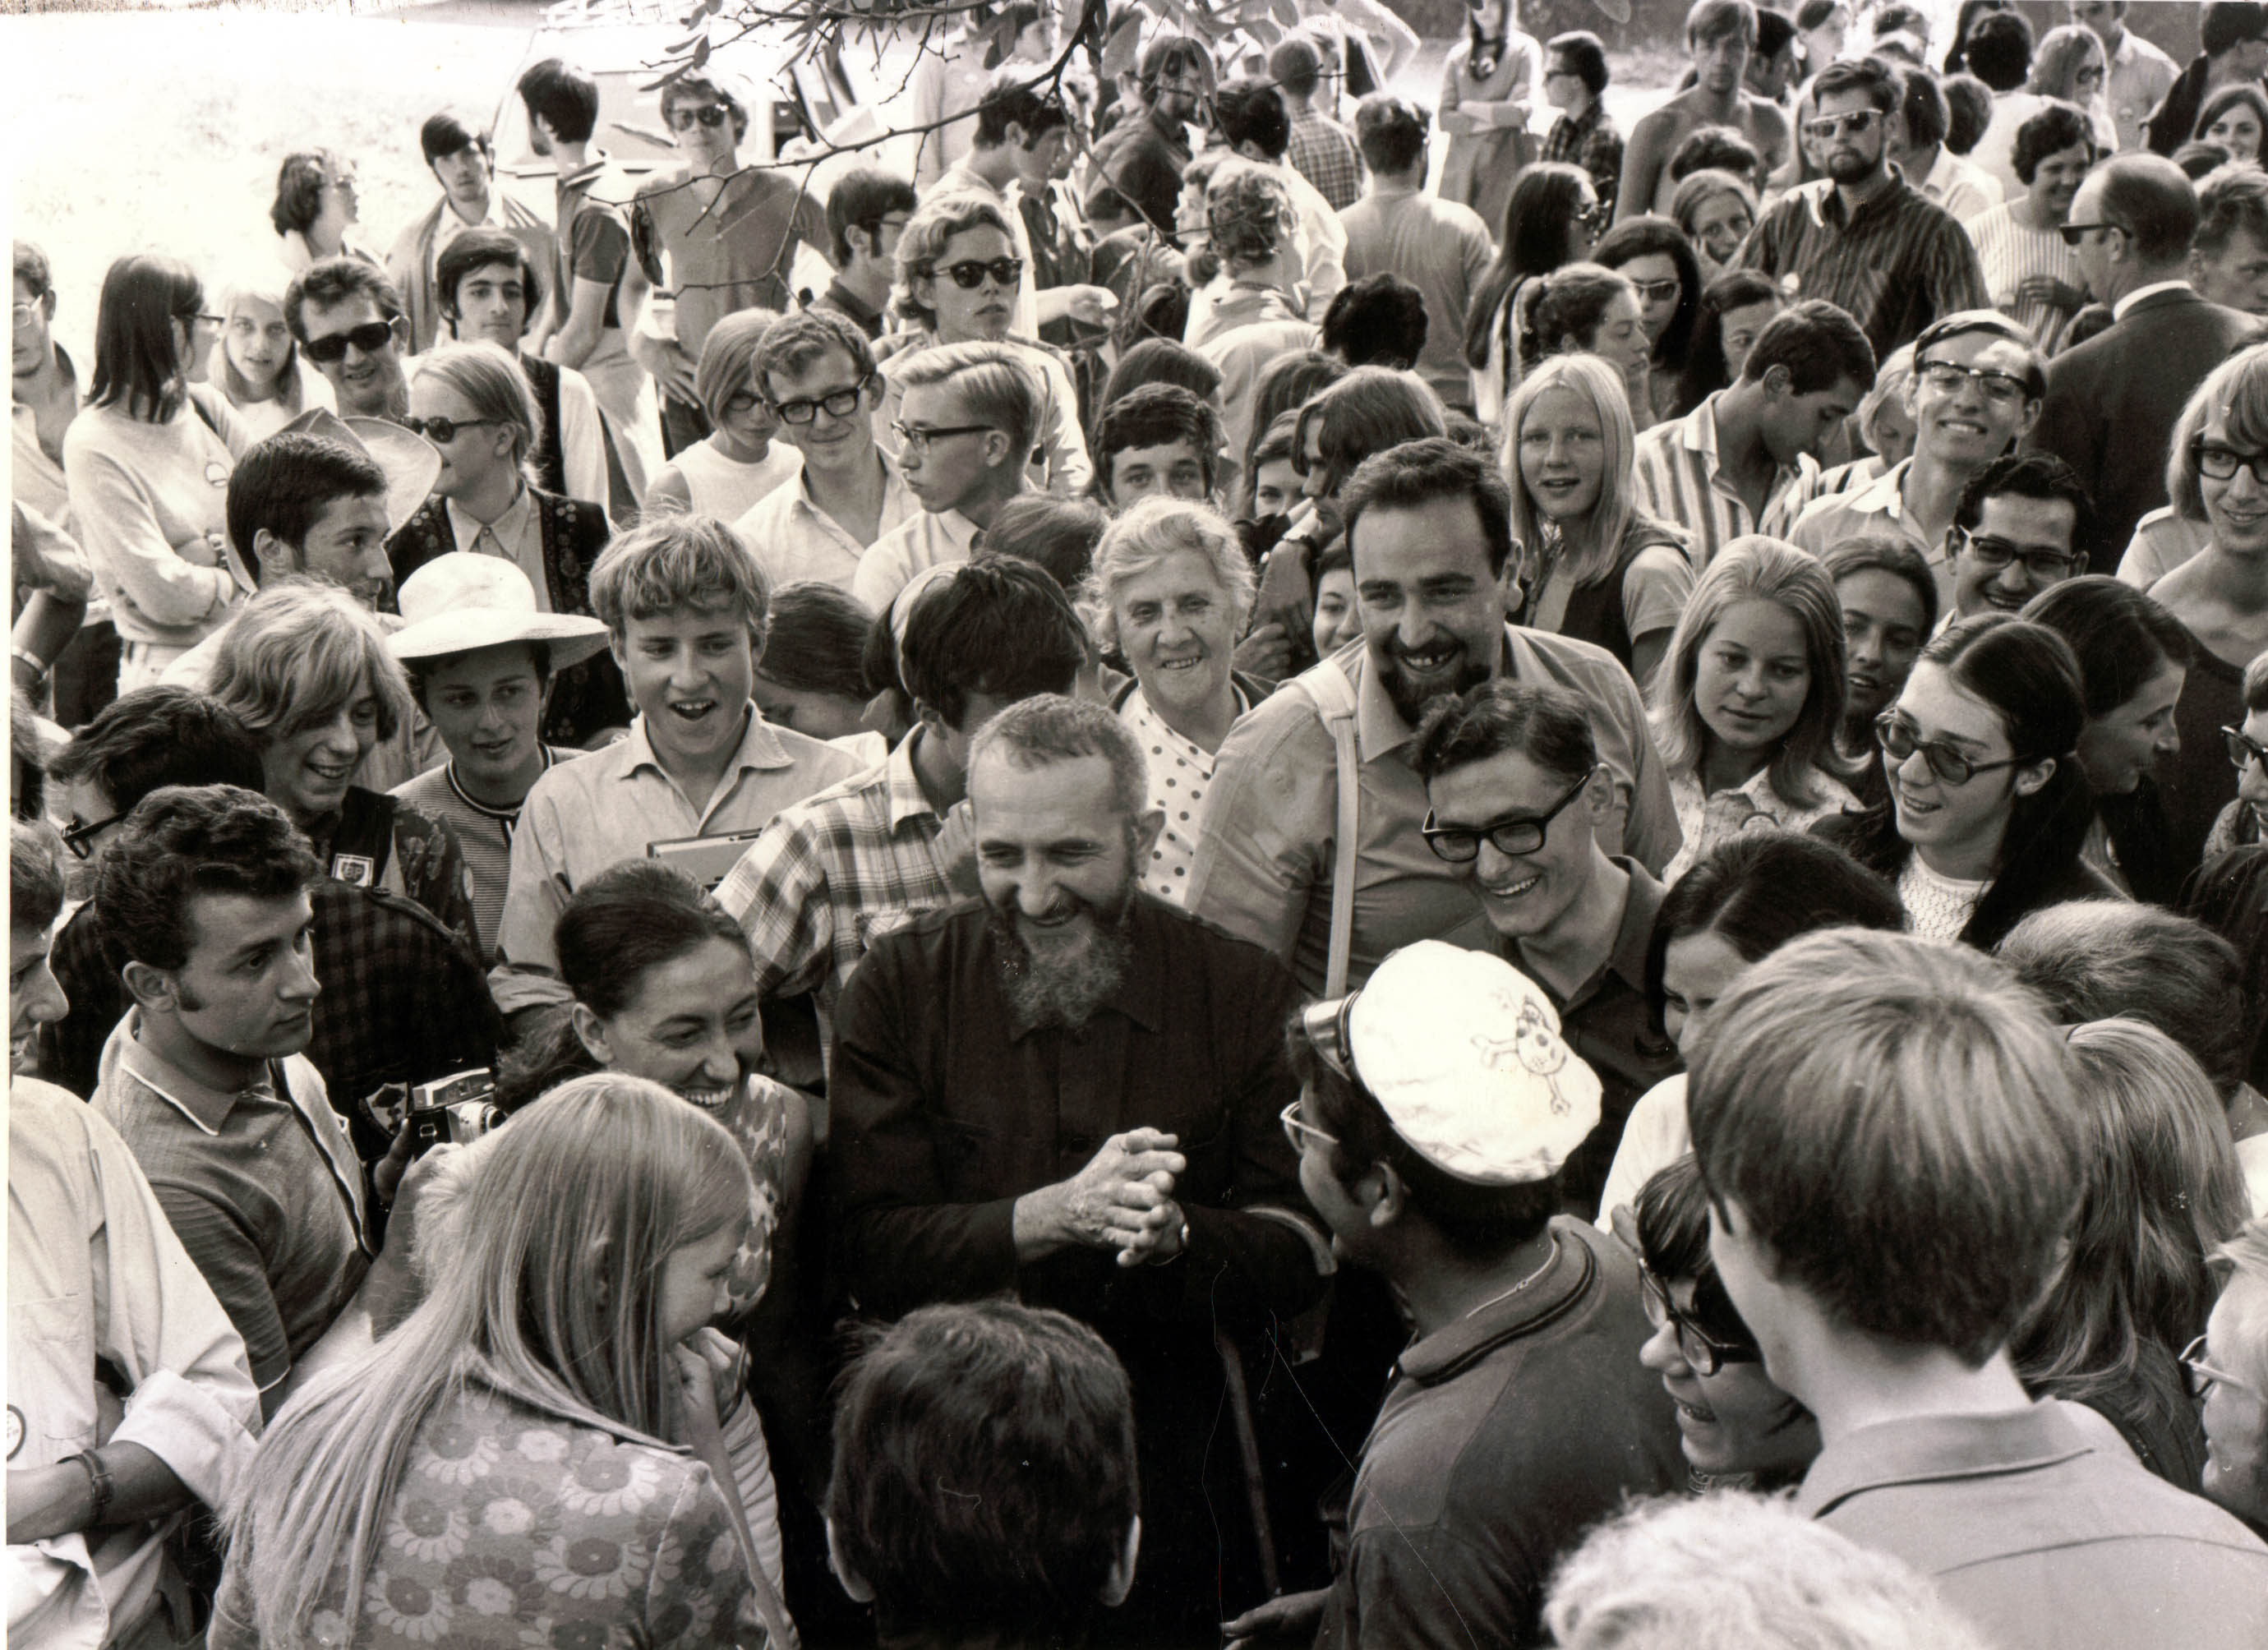 1969-camp int-Danemark